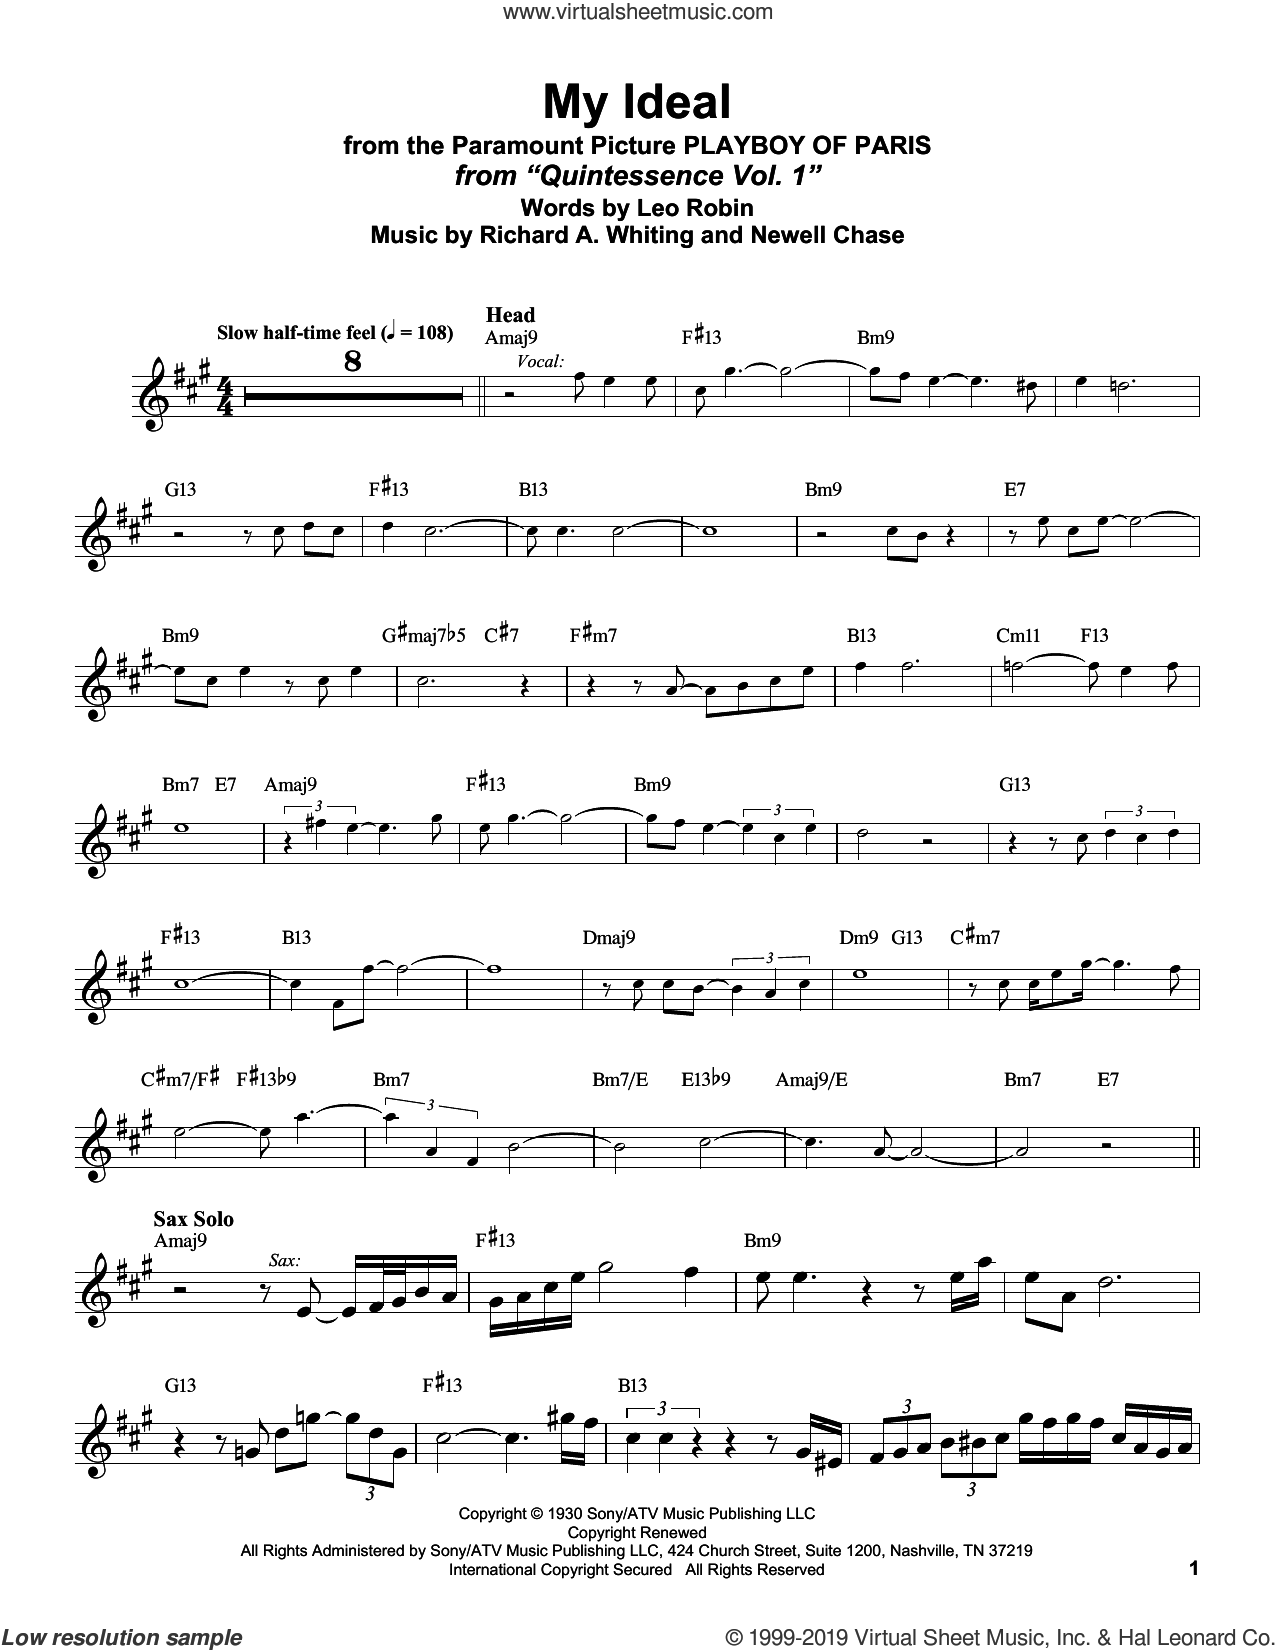 My Ideal (from Playboy of Paris) sheet music for alto saxophone (transcription) by Stan Getz, Leo Robin, Newell Chase and Richard A. Whiting, intermediate skill level